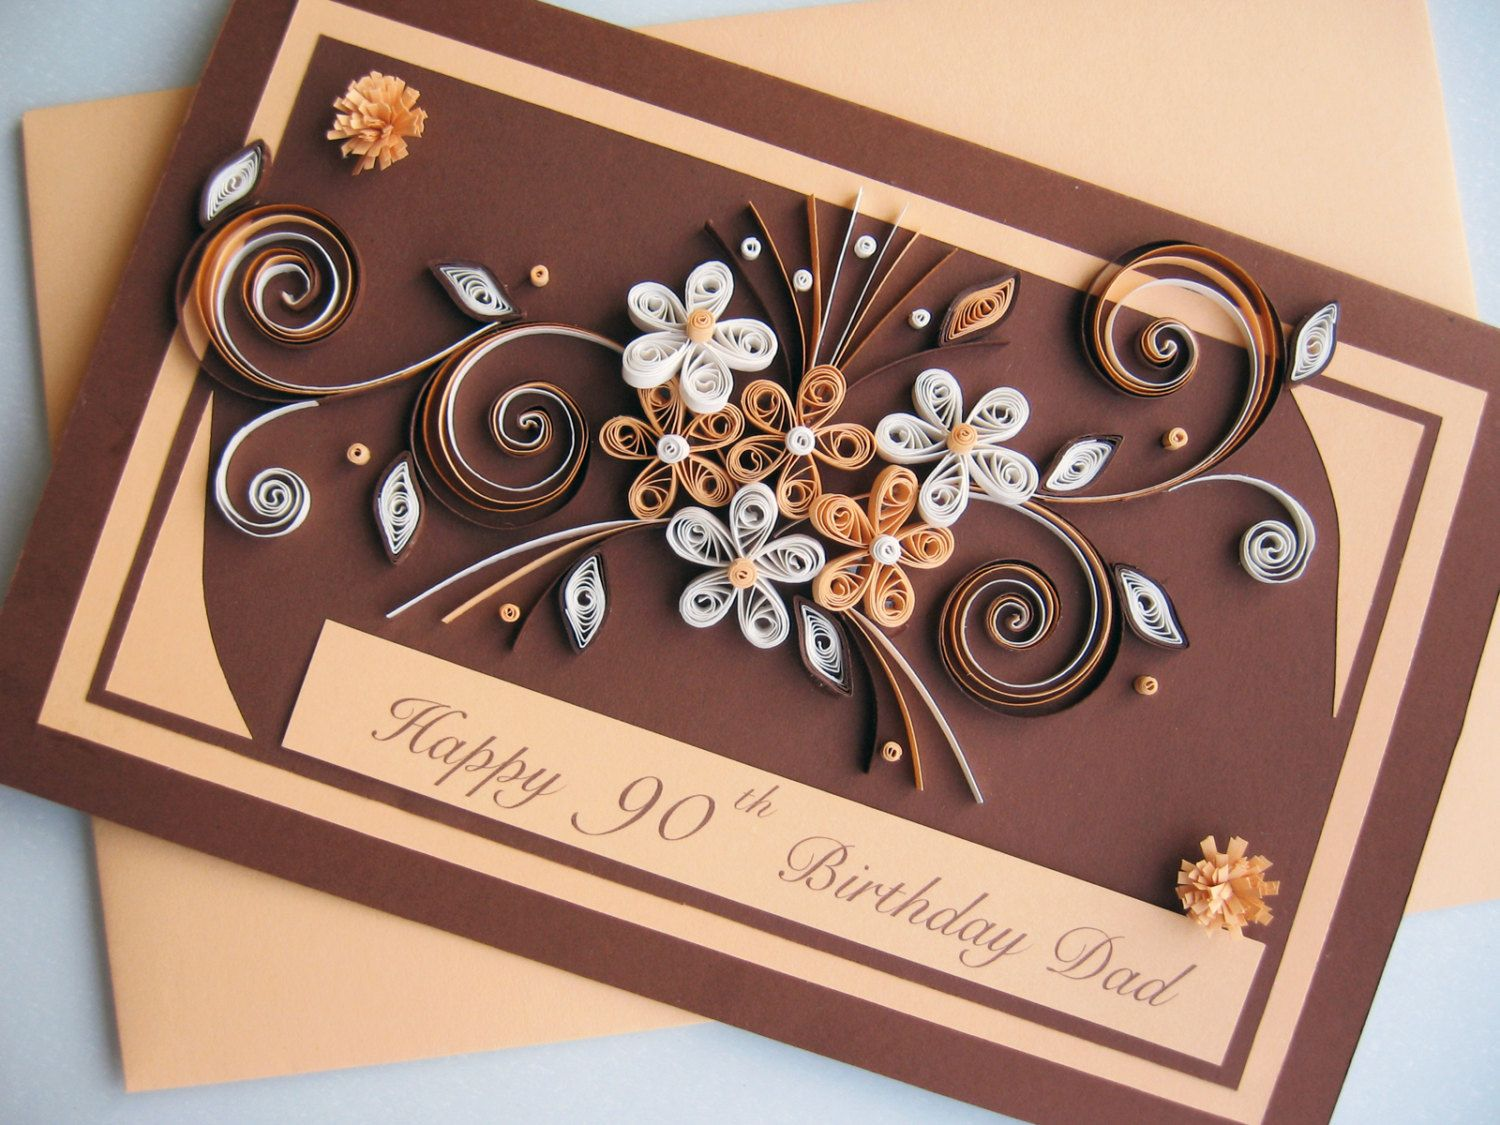 happy 90th birthday card handmade paper quilling by